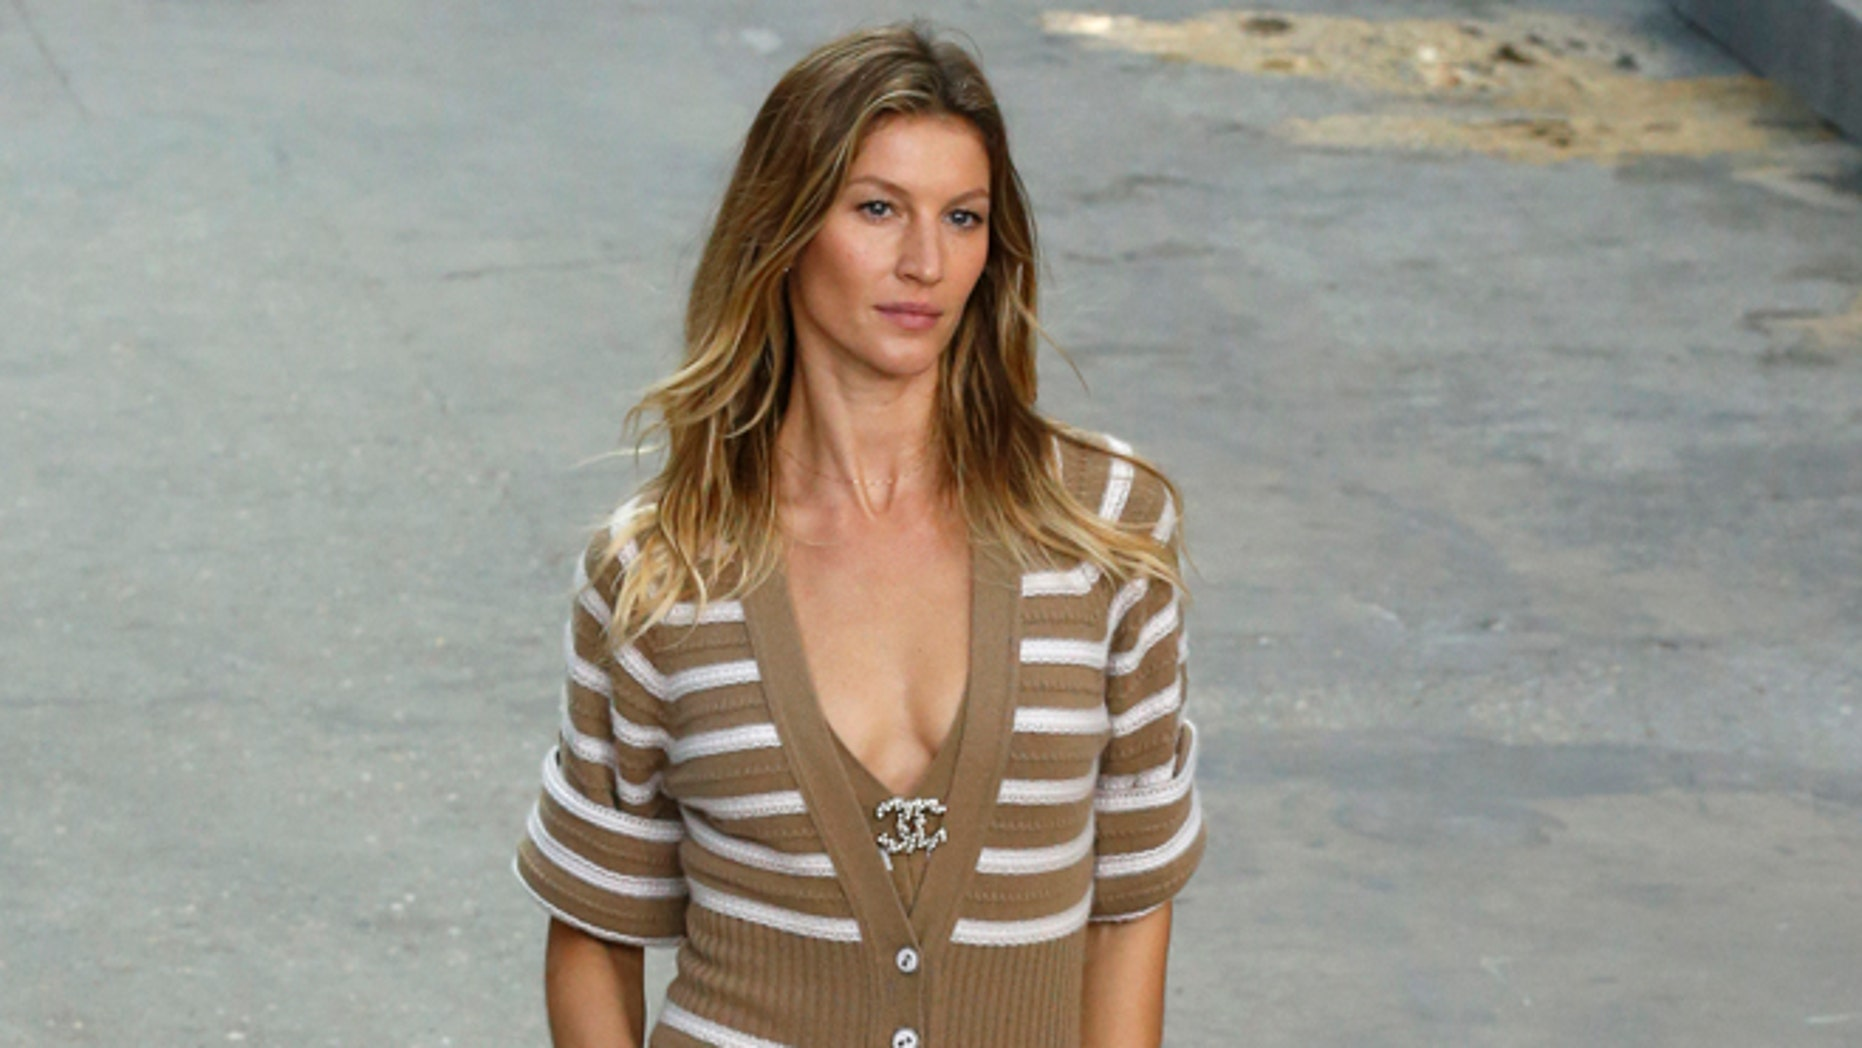 Model Giselle Bundchen wears a creation for Chanel's Spring/Summer 2015 ready-to-wear fashion collection presented in Paris, France, Tuesday, Sept. 30, 2014. (AP Photo/Francois Mori)